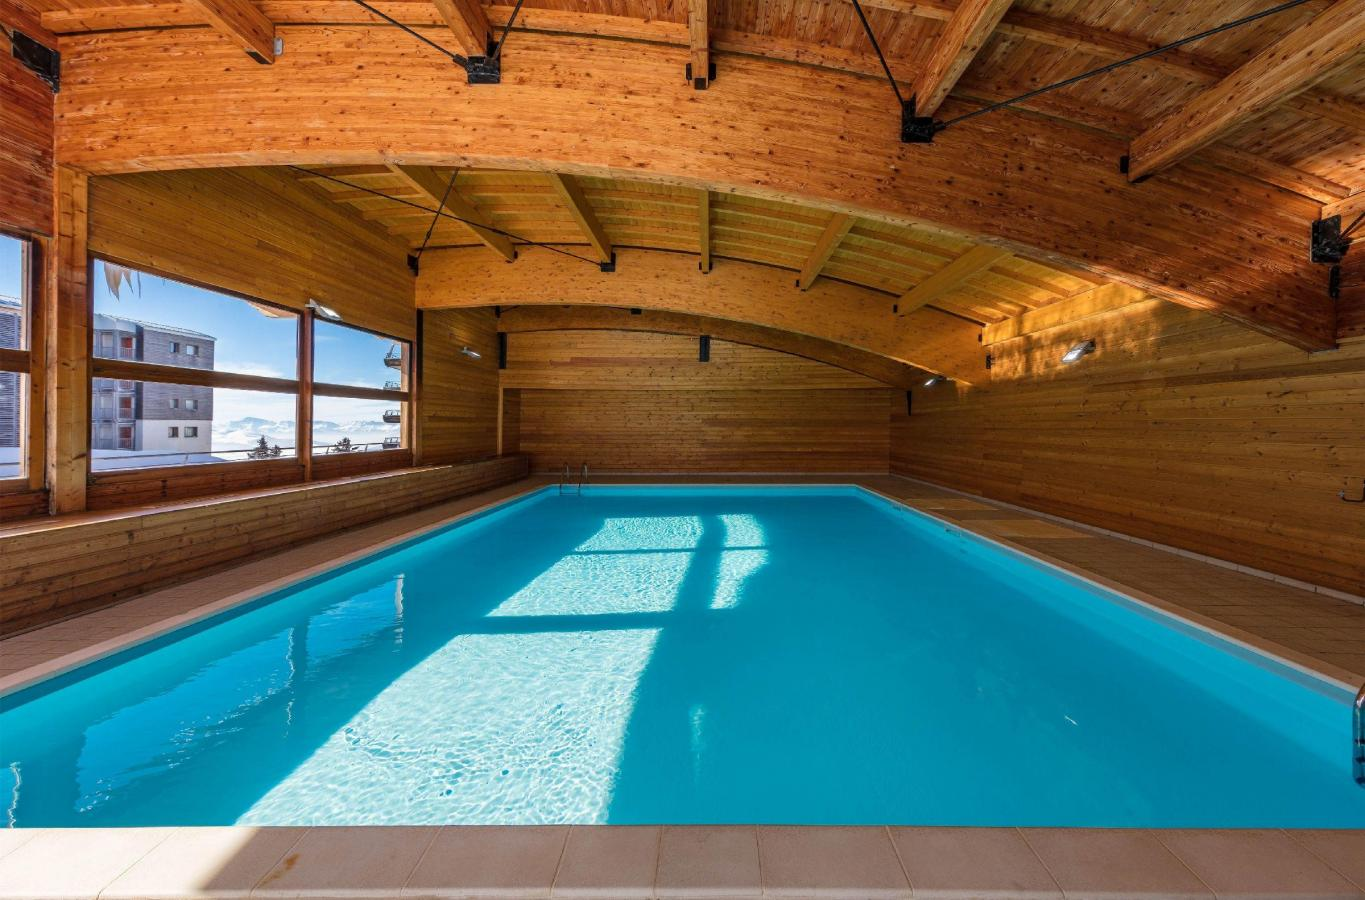 residence l 39 ecrin des neiges 45 chamrousse location